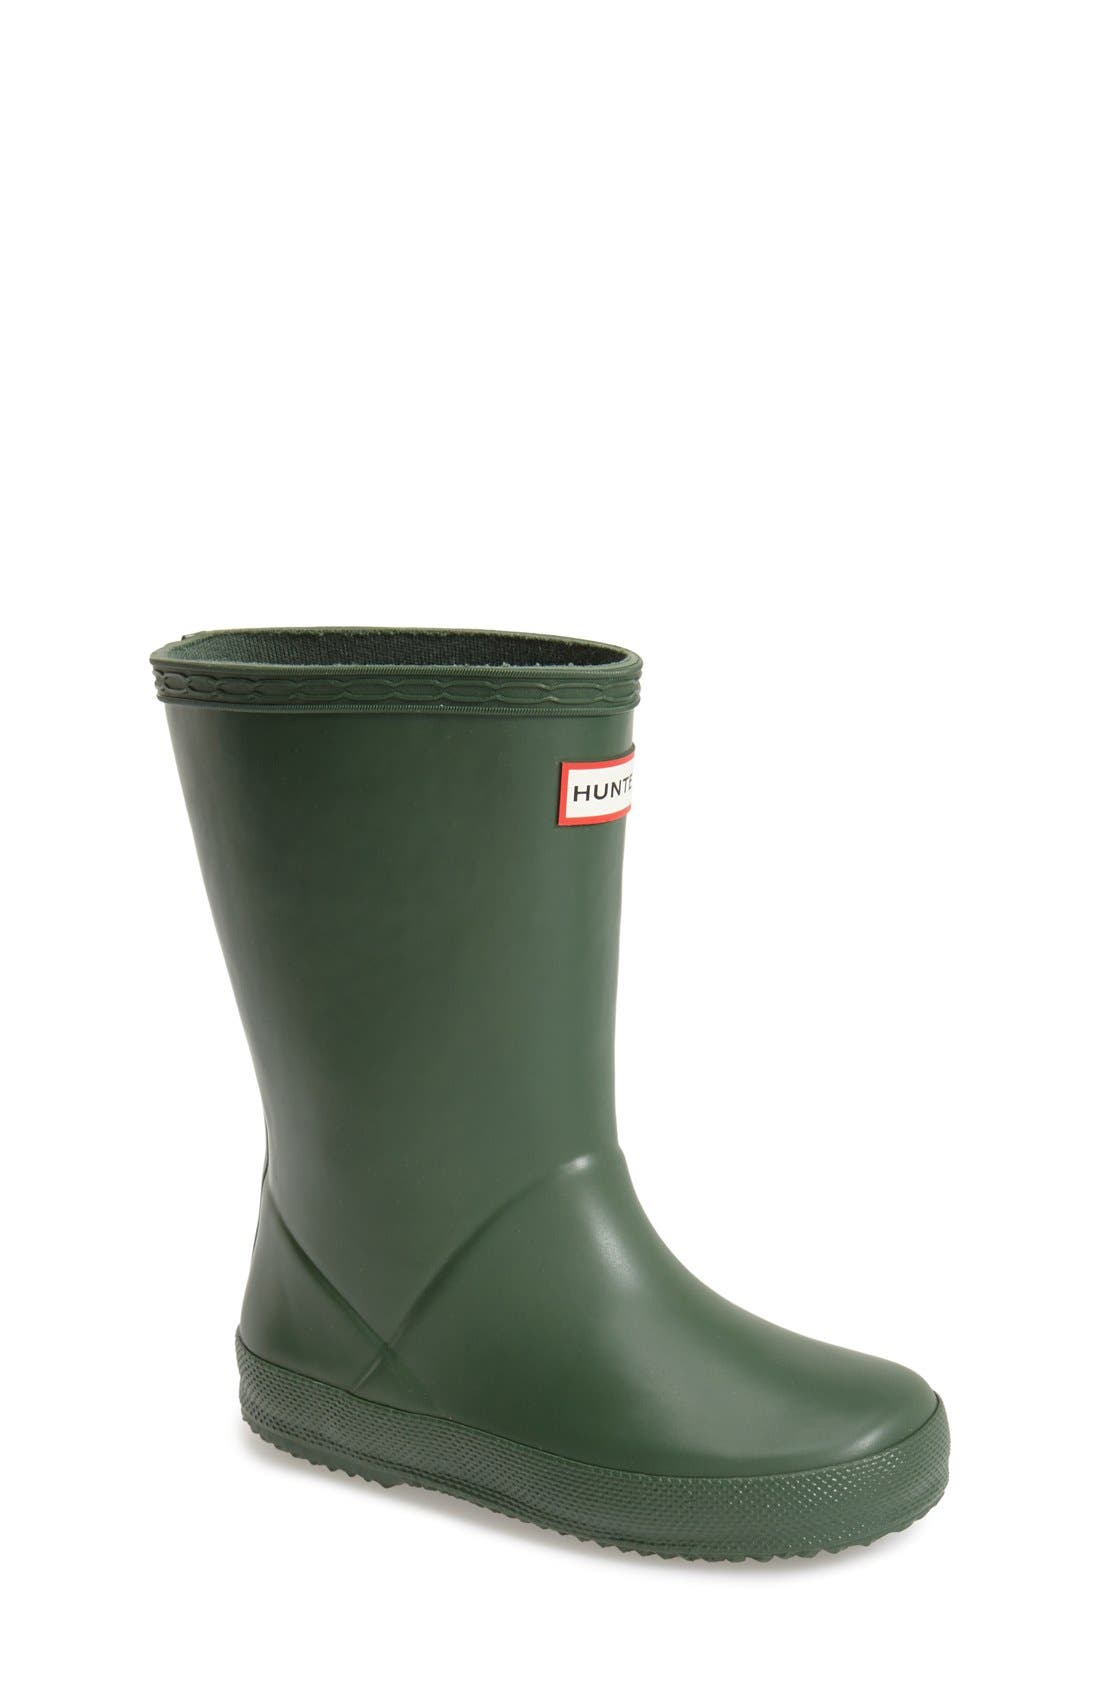 Main Image - Hunter 'First Classic' Rain Boot (Walker, Toddler & Little Kid)